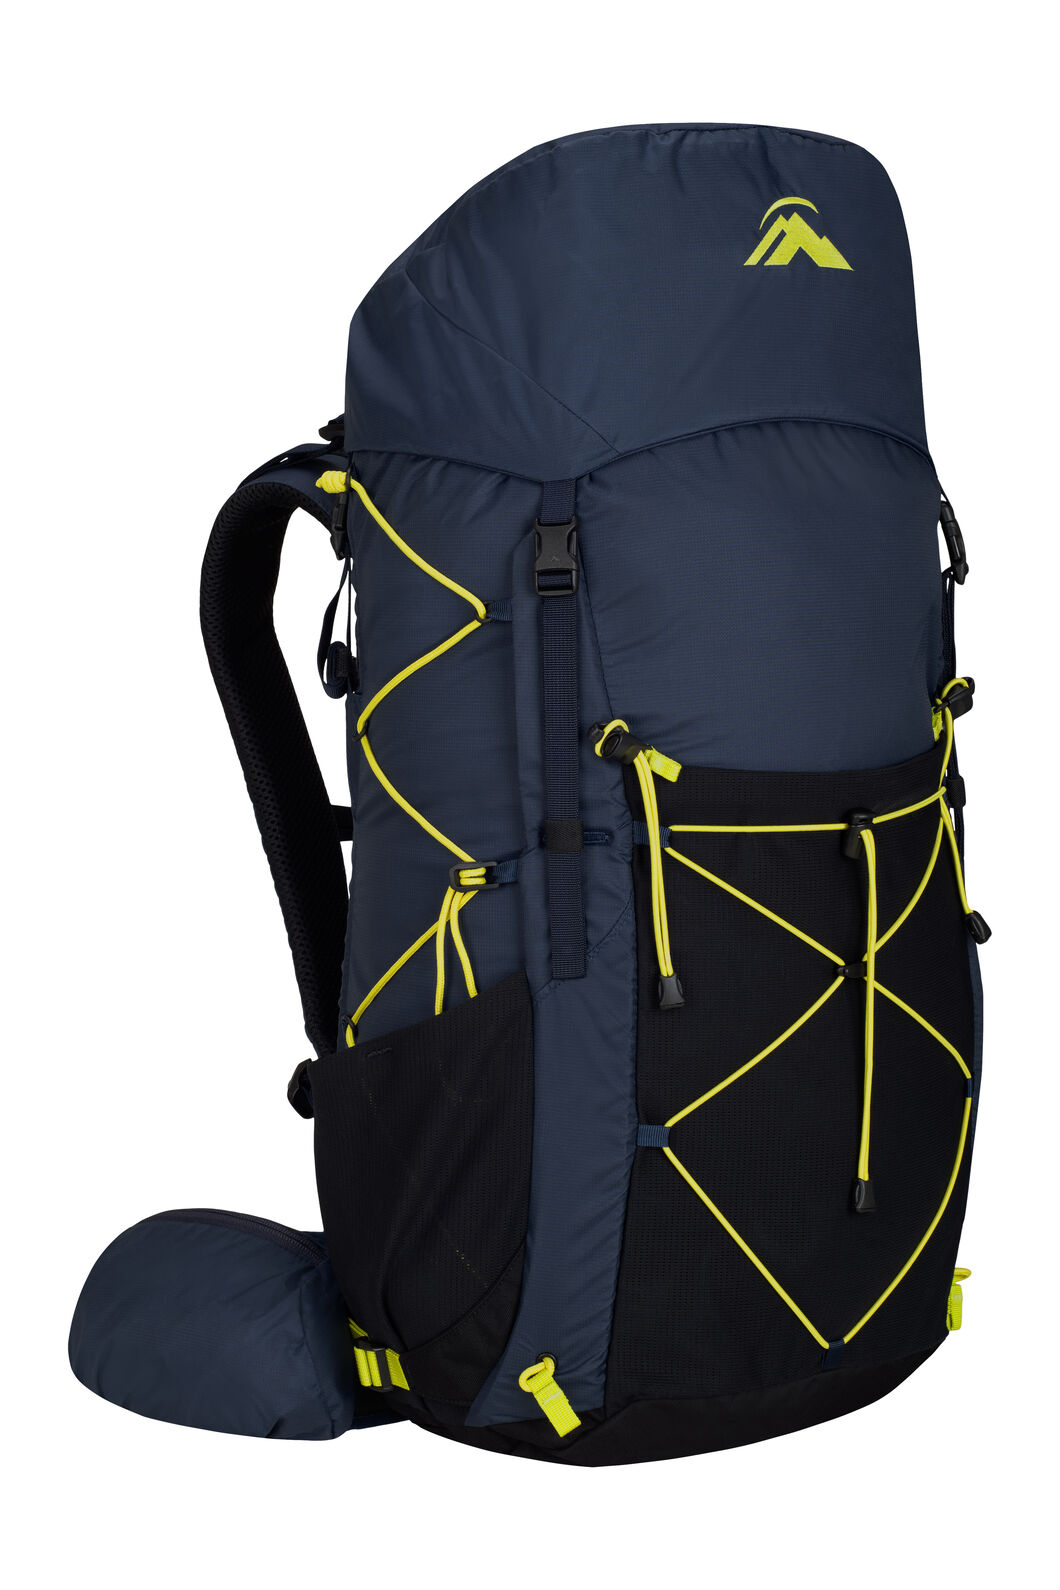 Macpac Fiord 1.1 40L Hiking Pack, Black Iris, hi-res